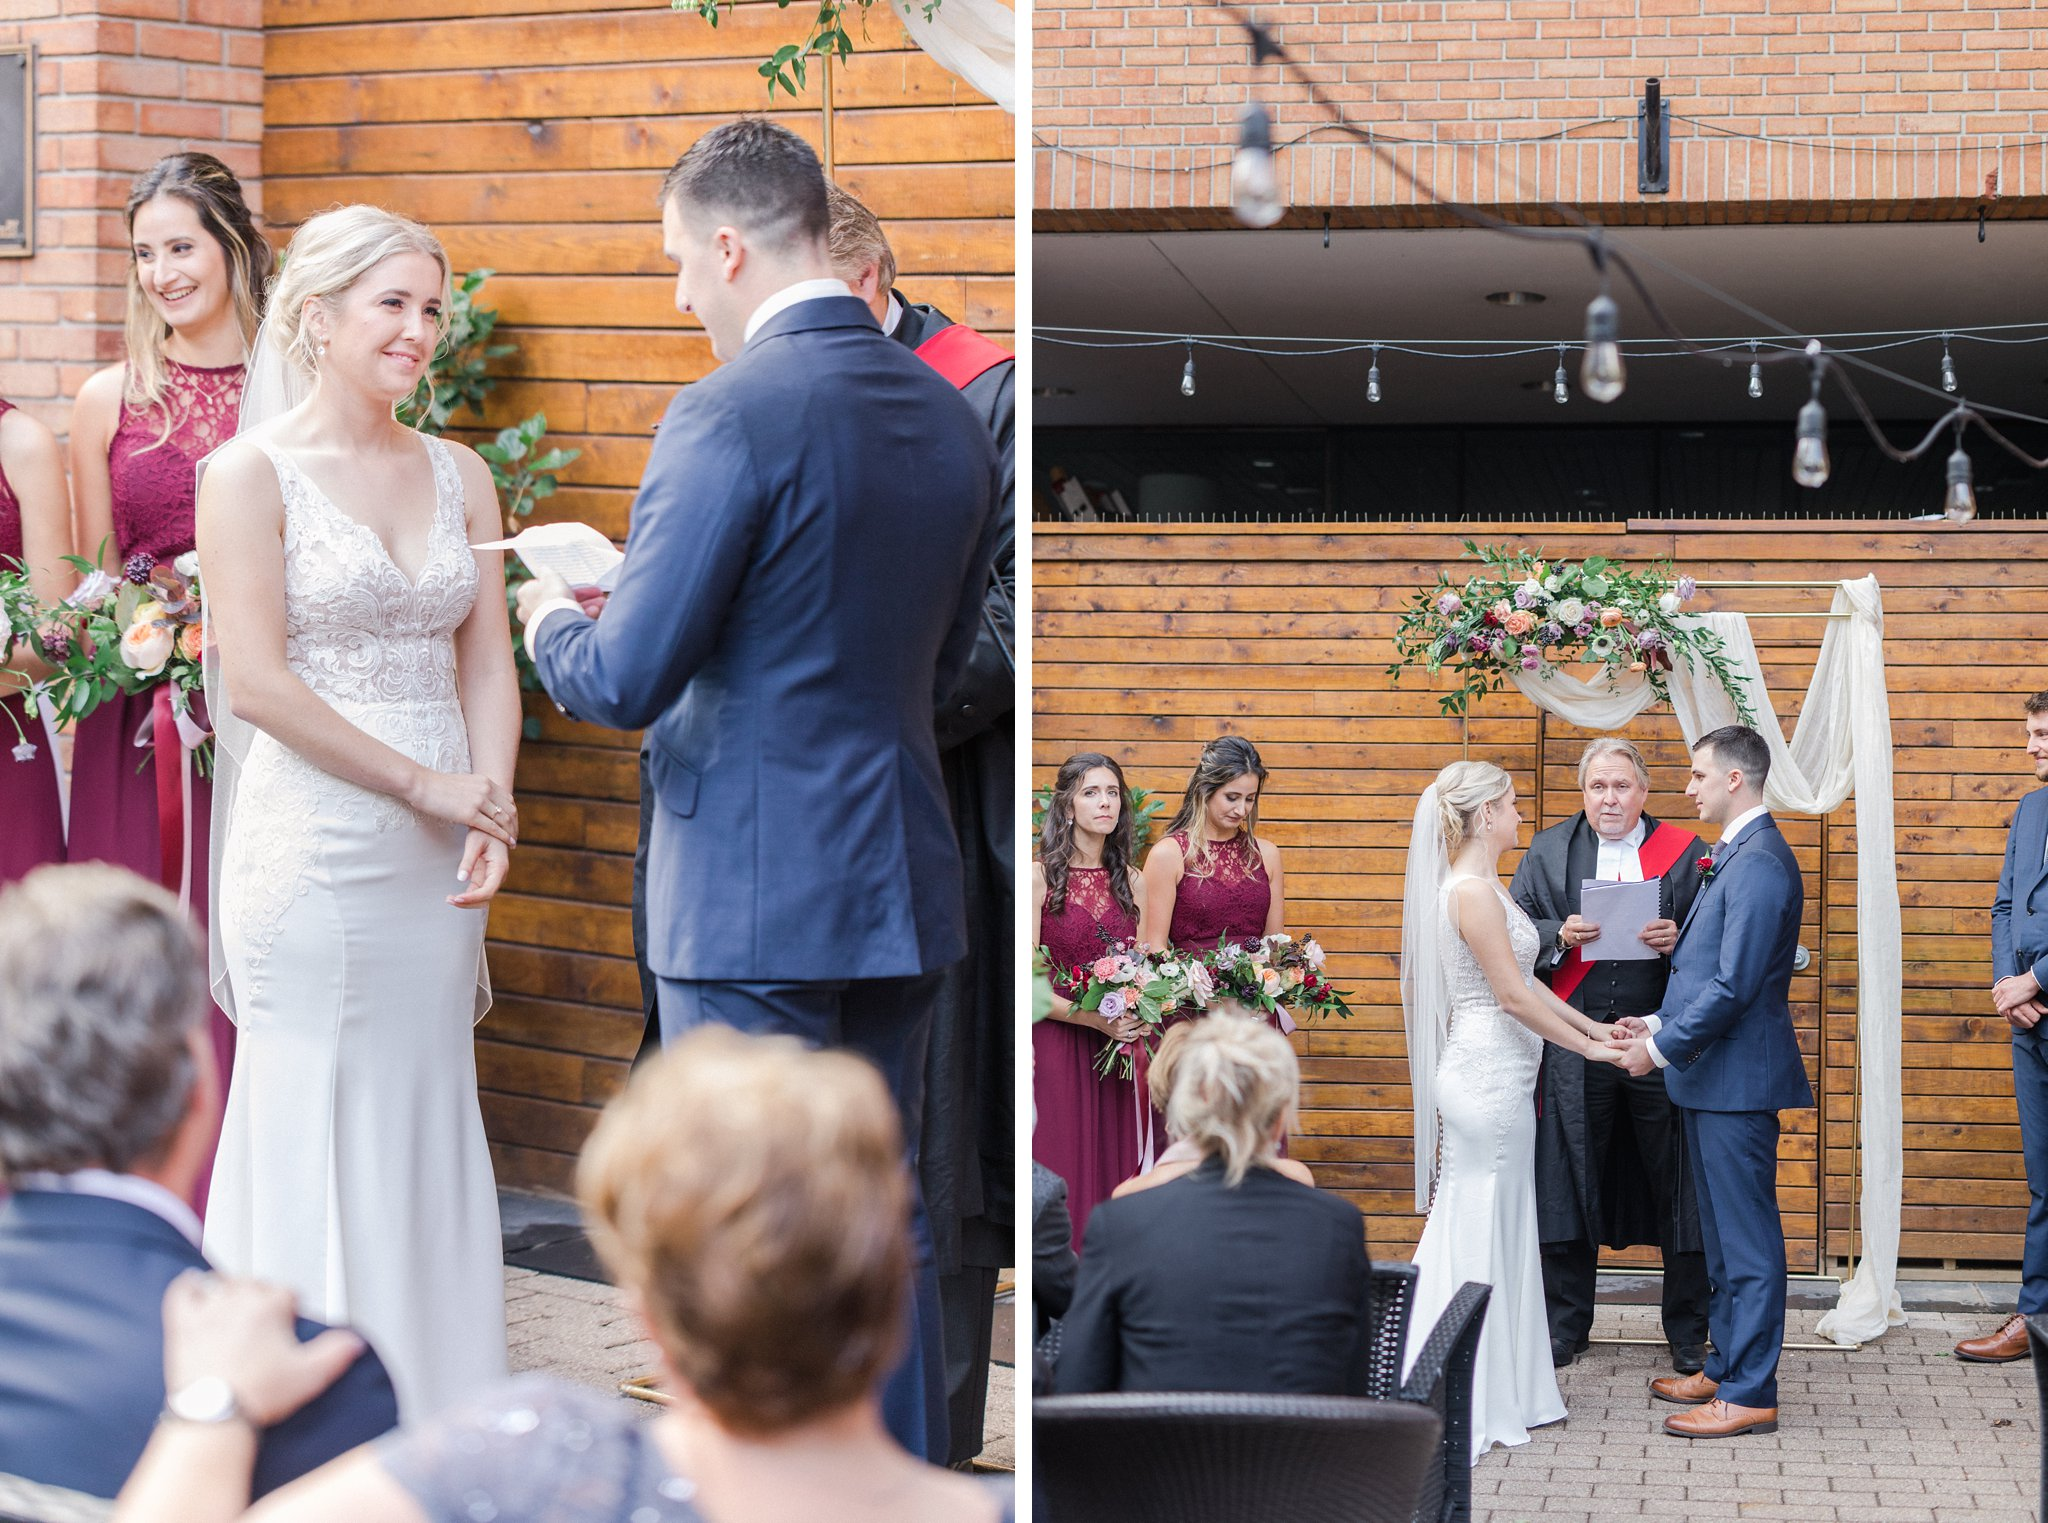 ceremony Ottawa restaurant wedding at Sidedoor Restaurant